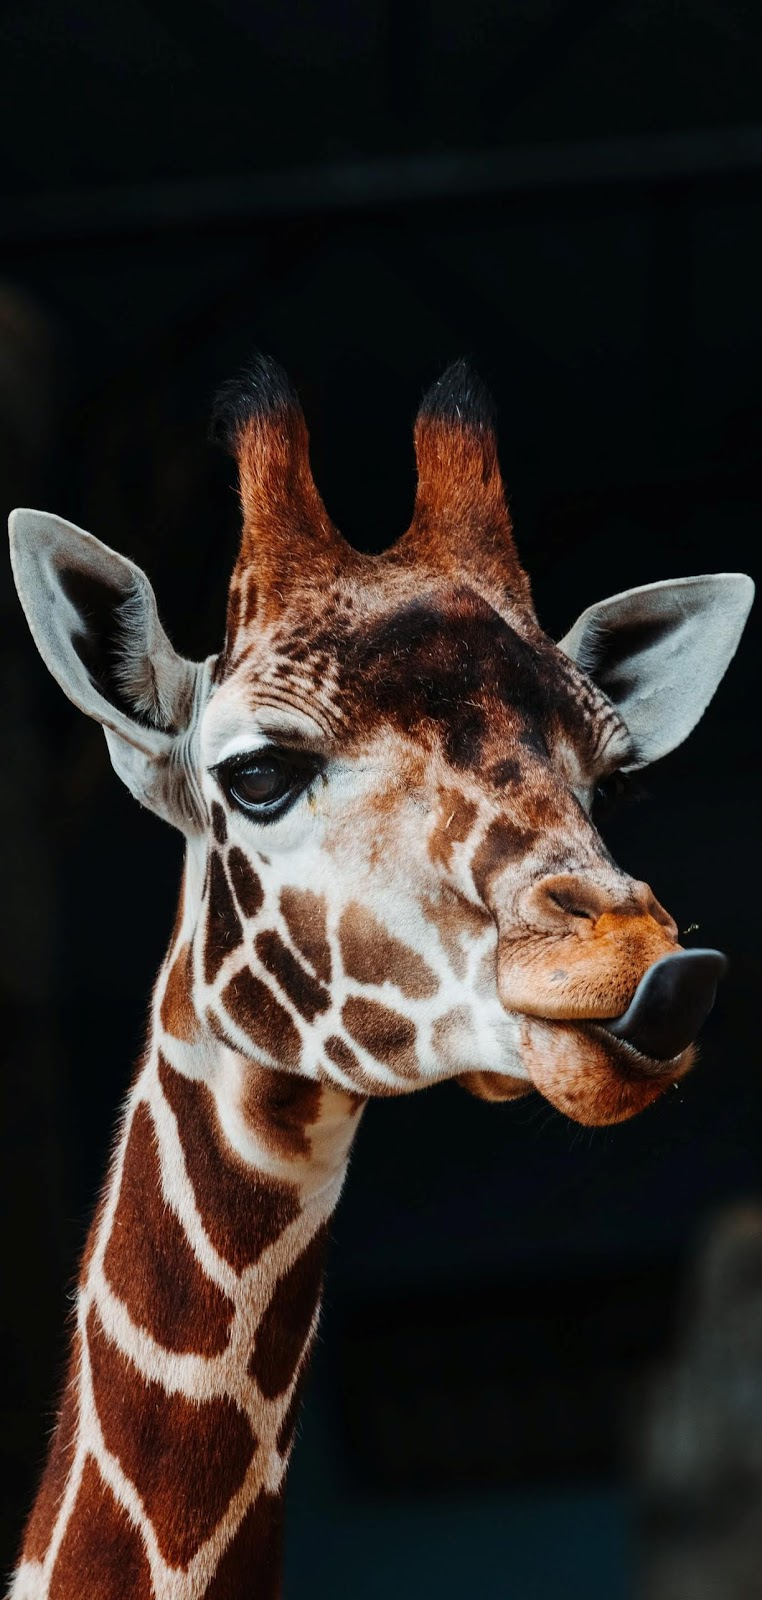 Giraffe with tongue out.